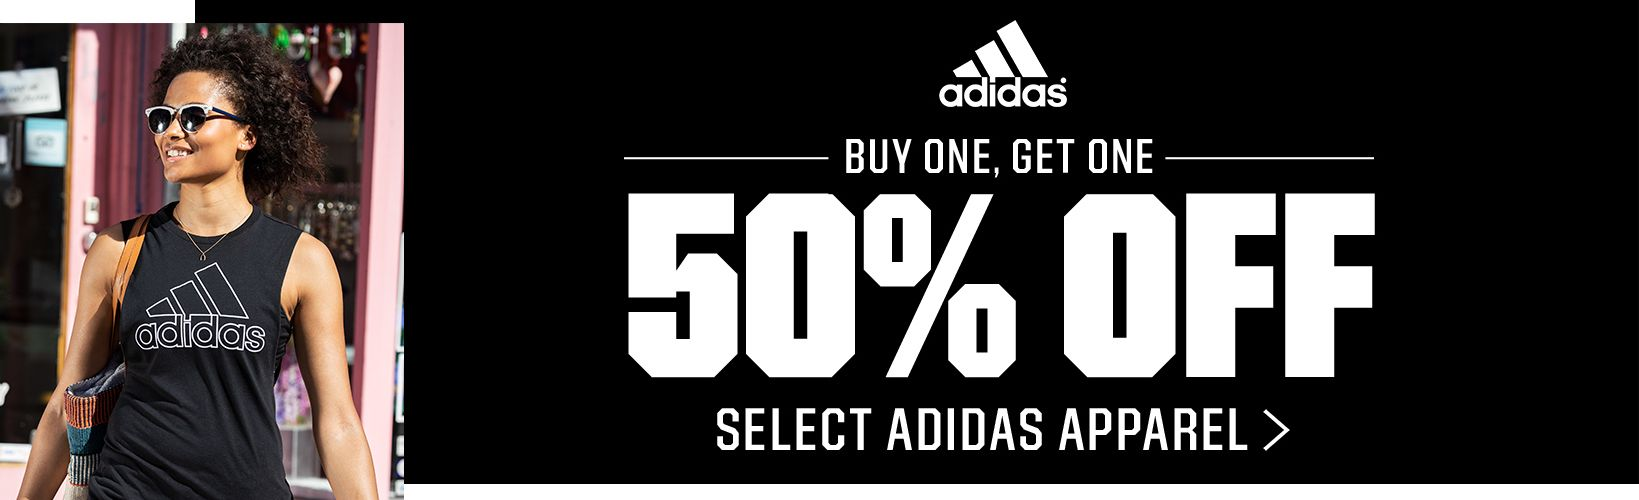 Buy One, Get One 50% off Select Adidas Apparel >